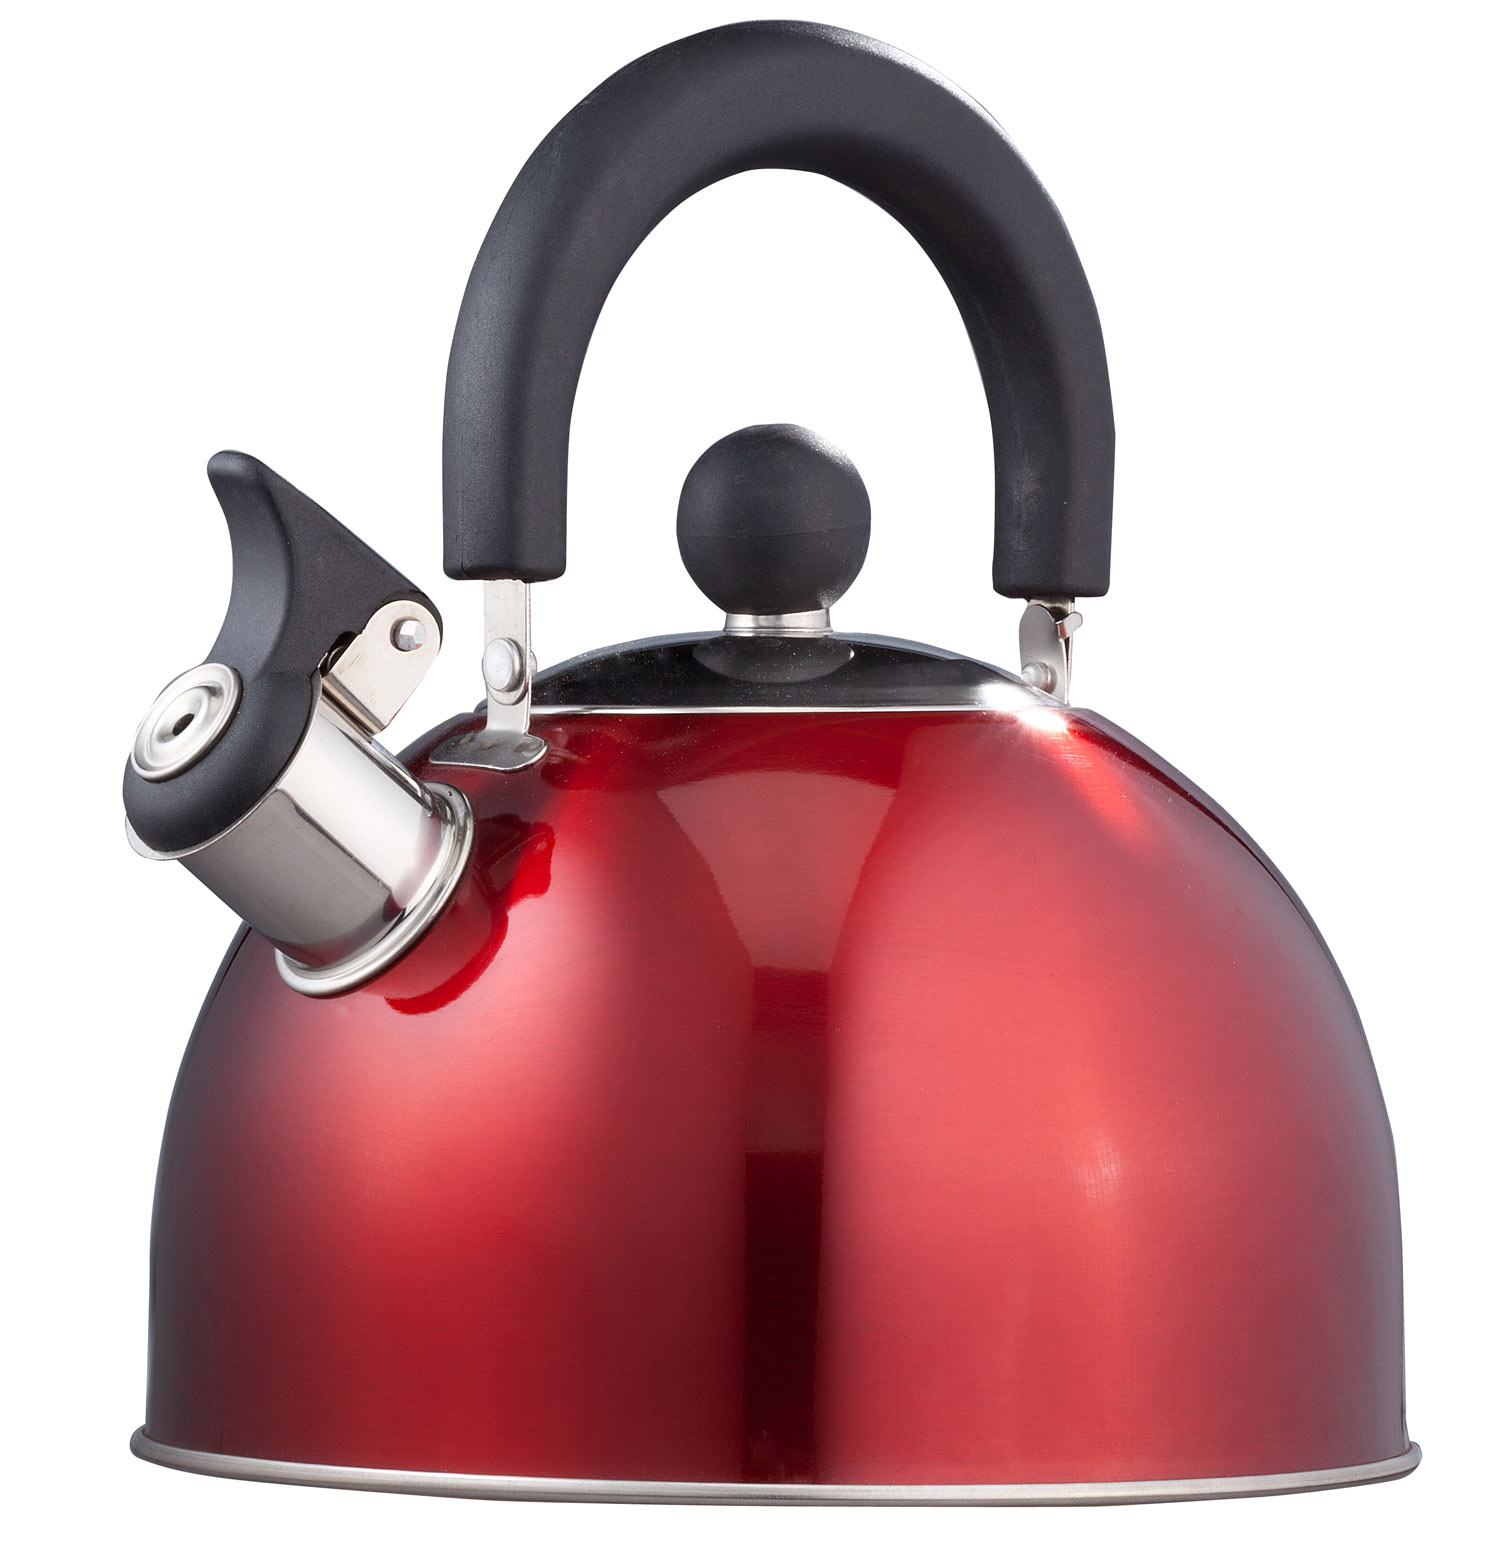 Miles Kimball   Red Whistling Tea Kettle by Home-Style Kitchen